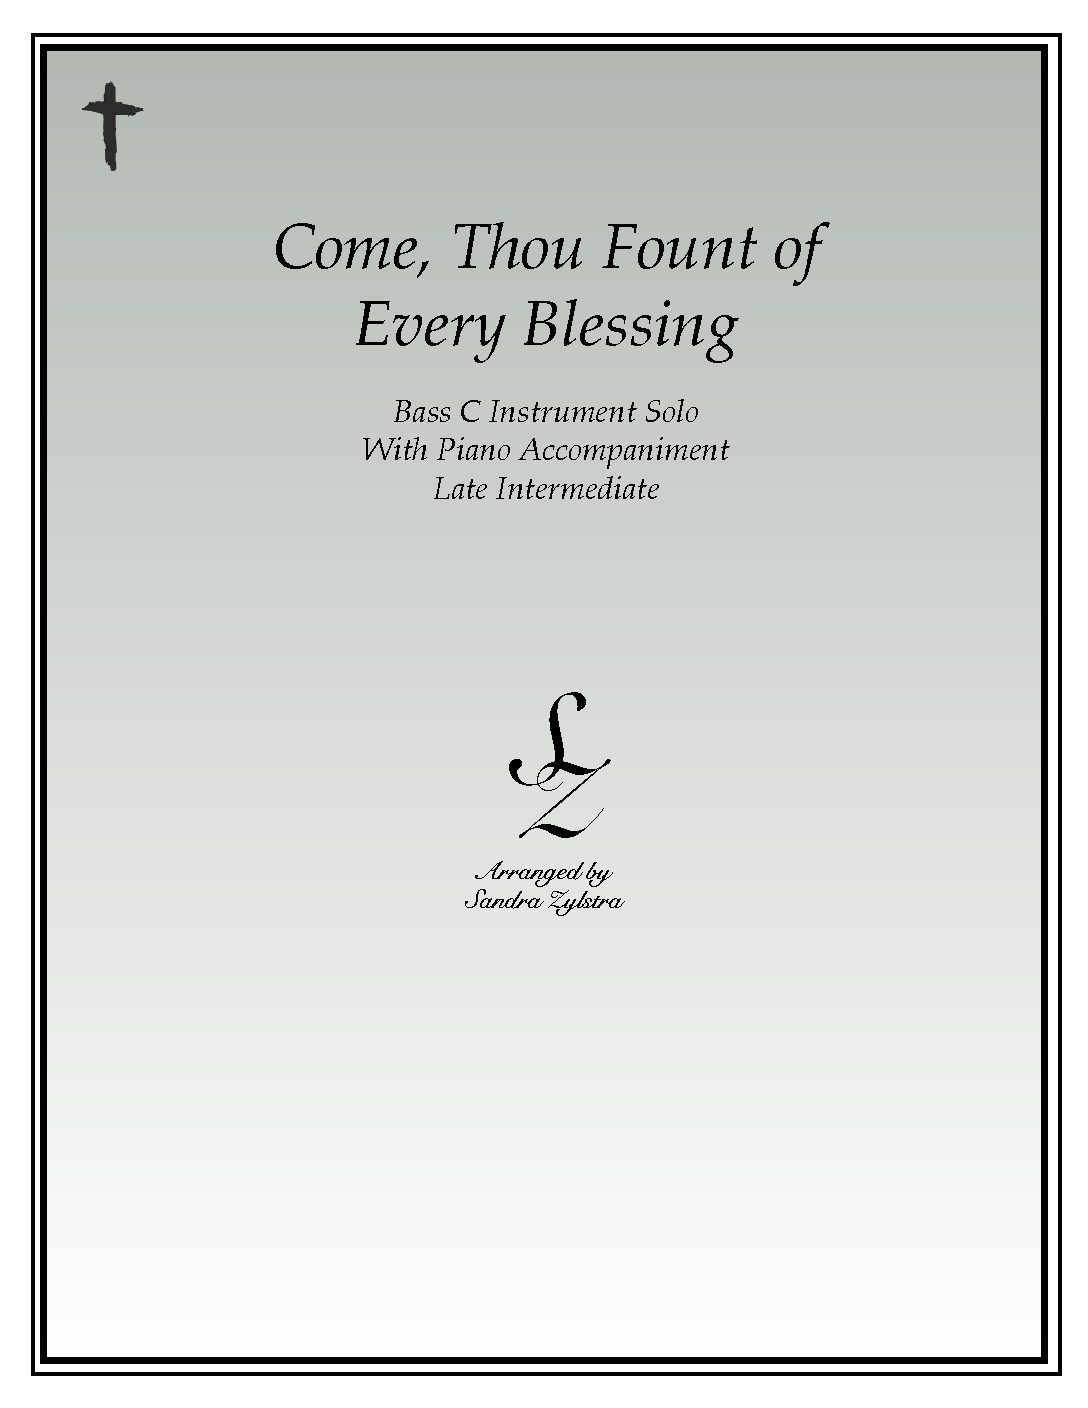 Come, Thou Fount Of Every Blessing -Bass C Instrument Solo